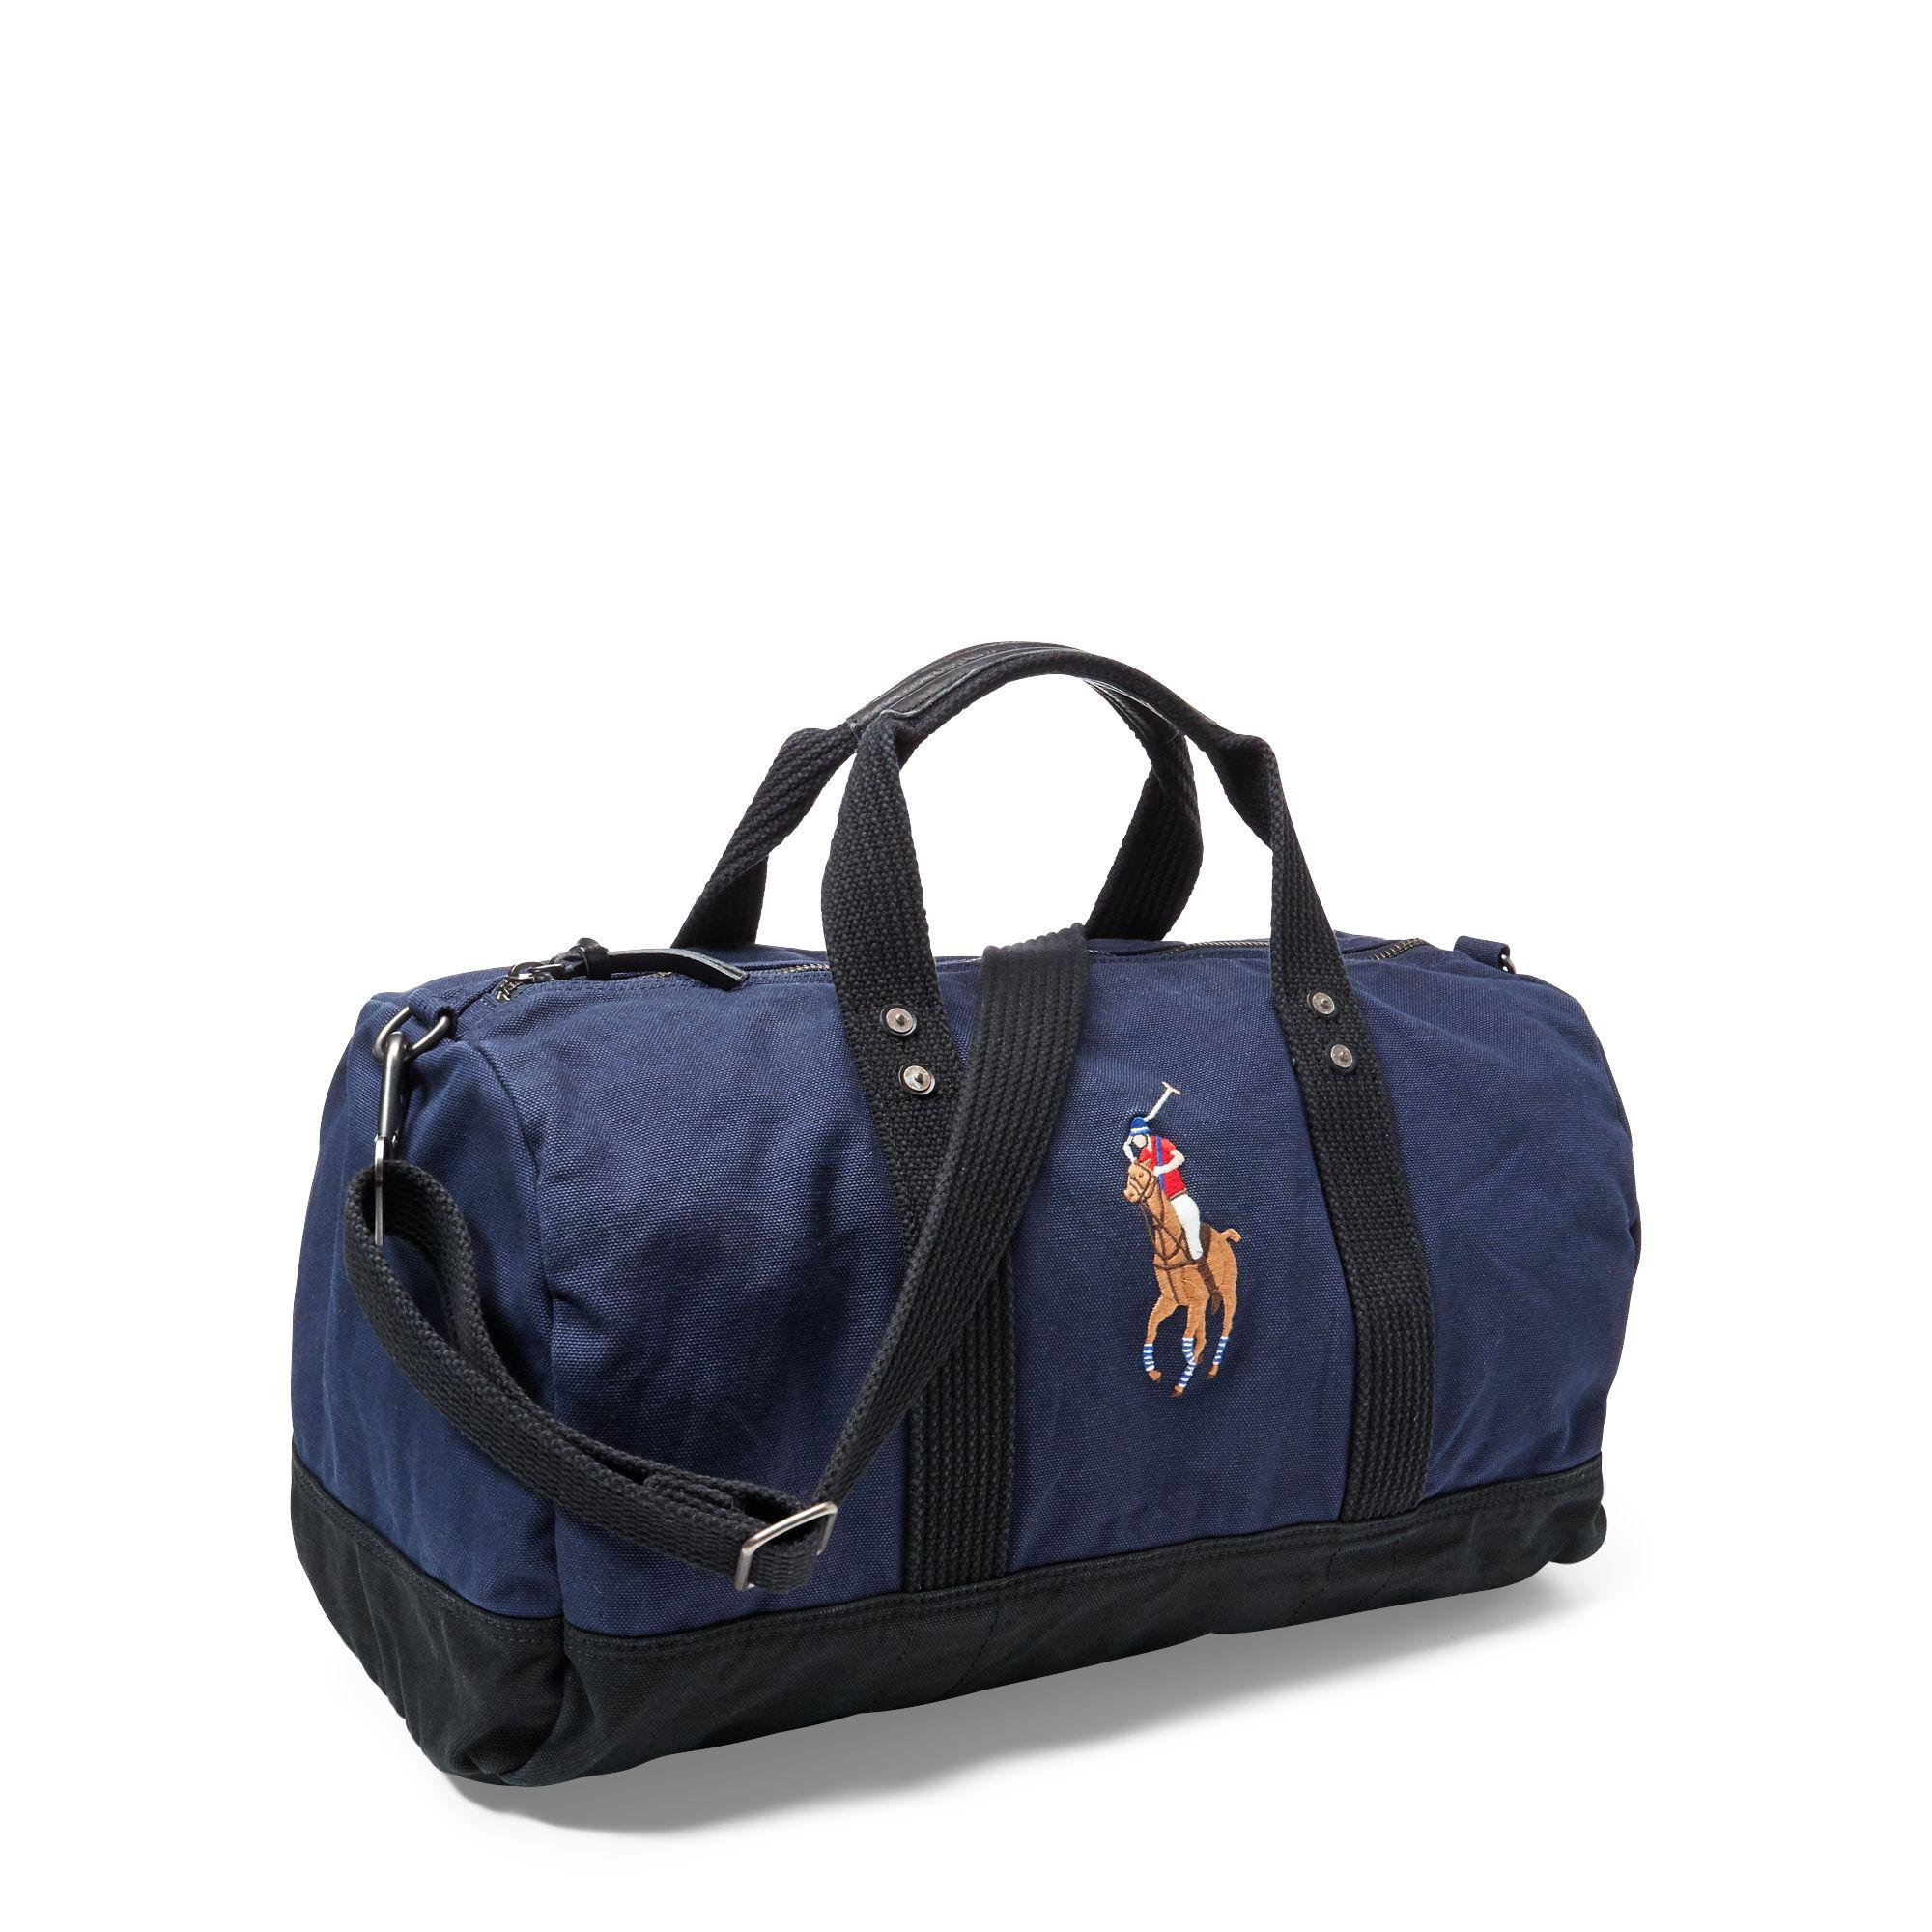 1fbcfc8c113b Polo Ralph Lauren - Blue Canvas Big Pony Duffel Bag for Men - Lyst. View  fullscreen